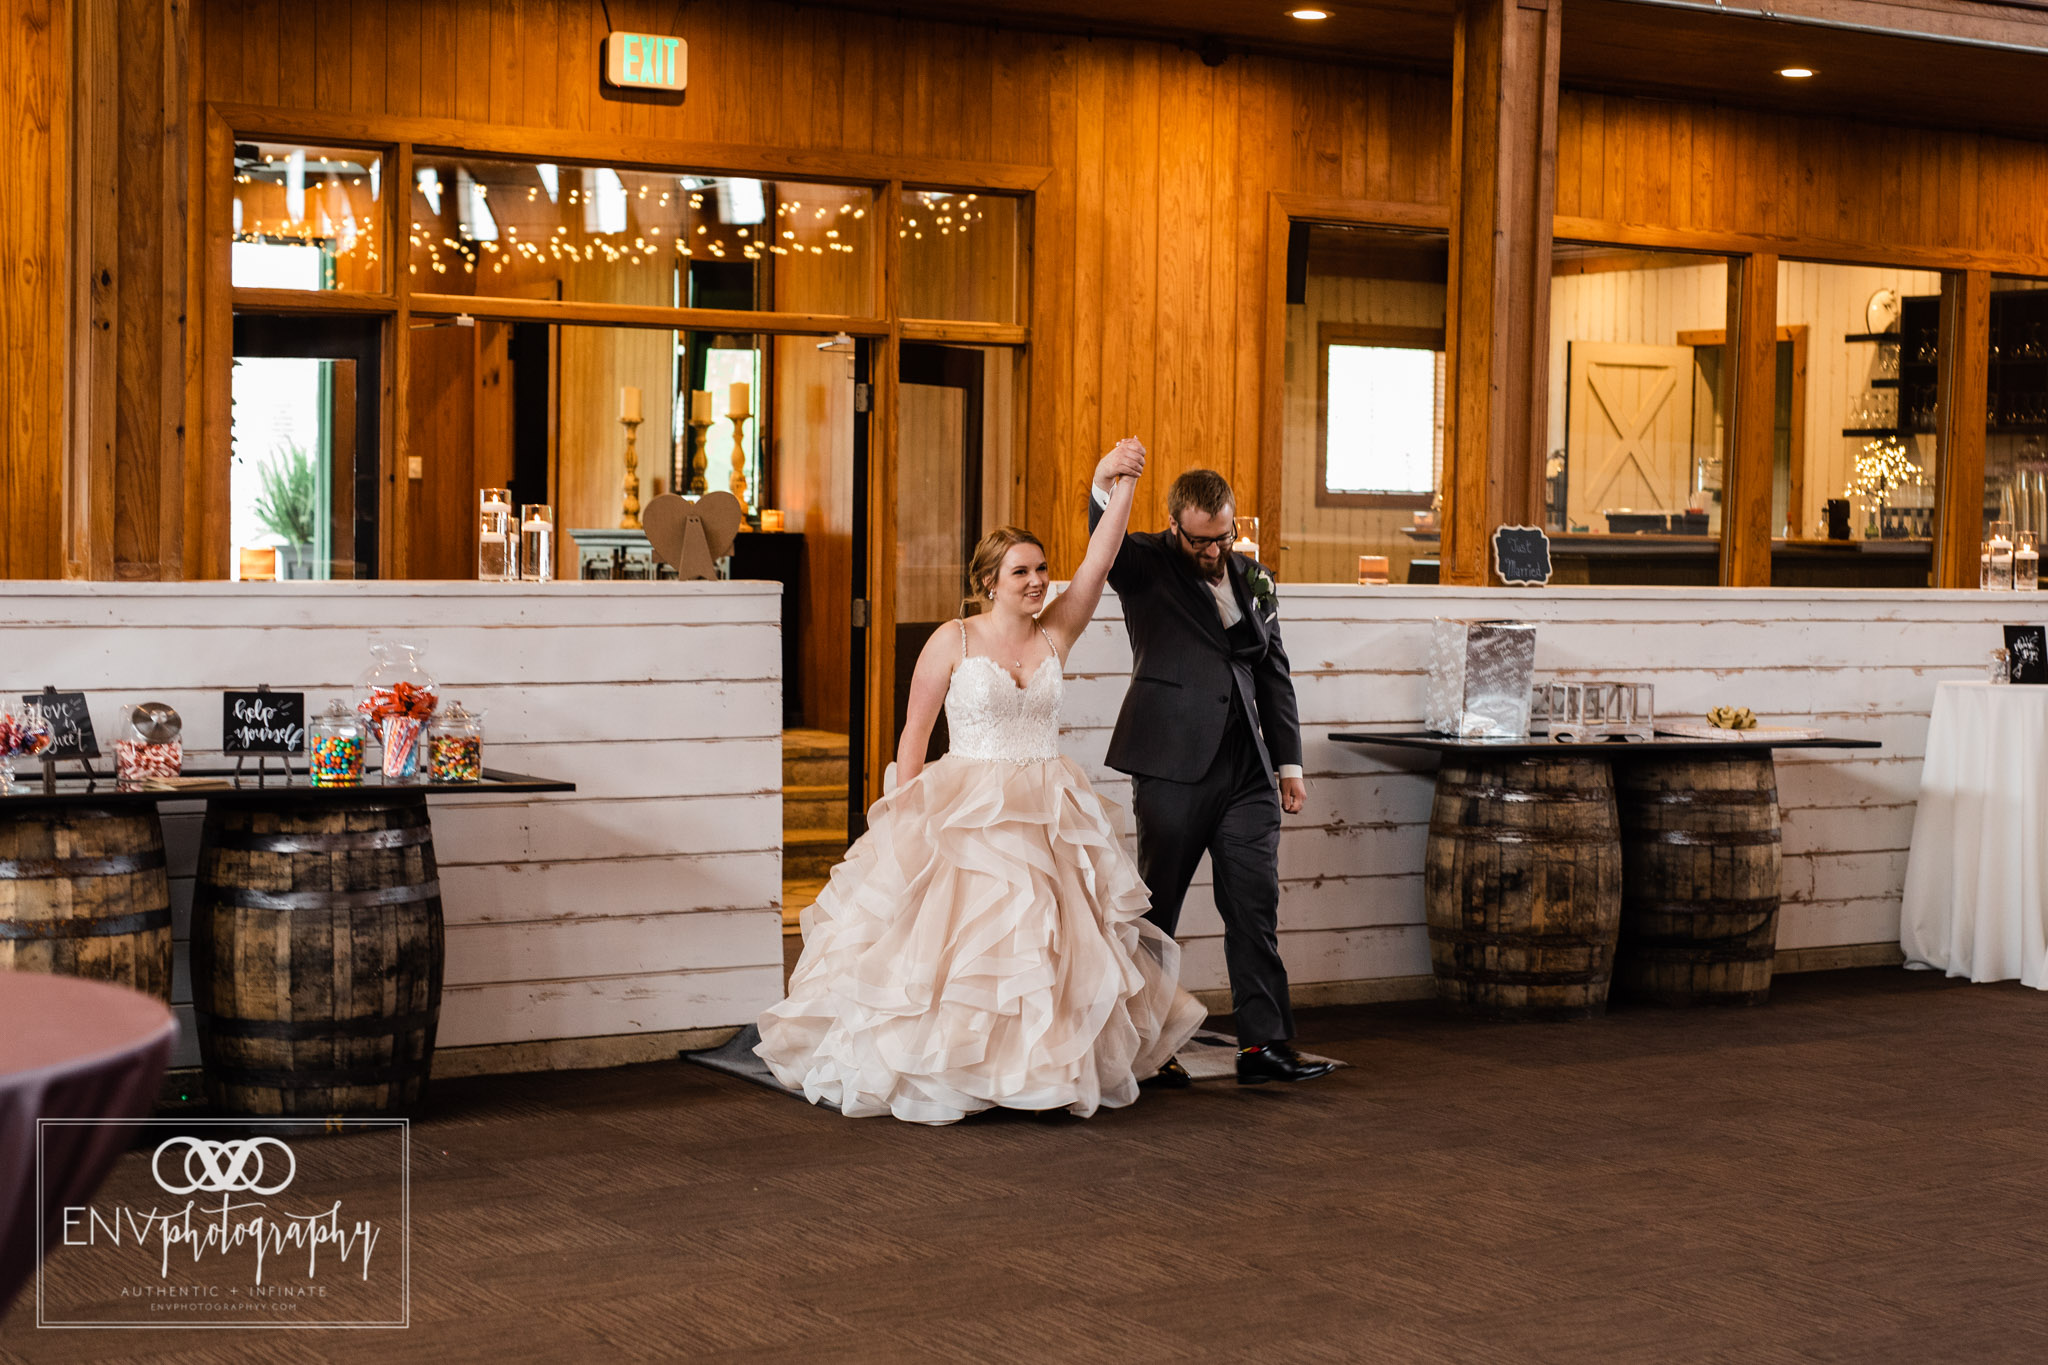 mount vernon columbus ohio irongate equestrian center wedding photographer (55).jpg